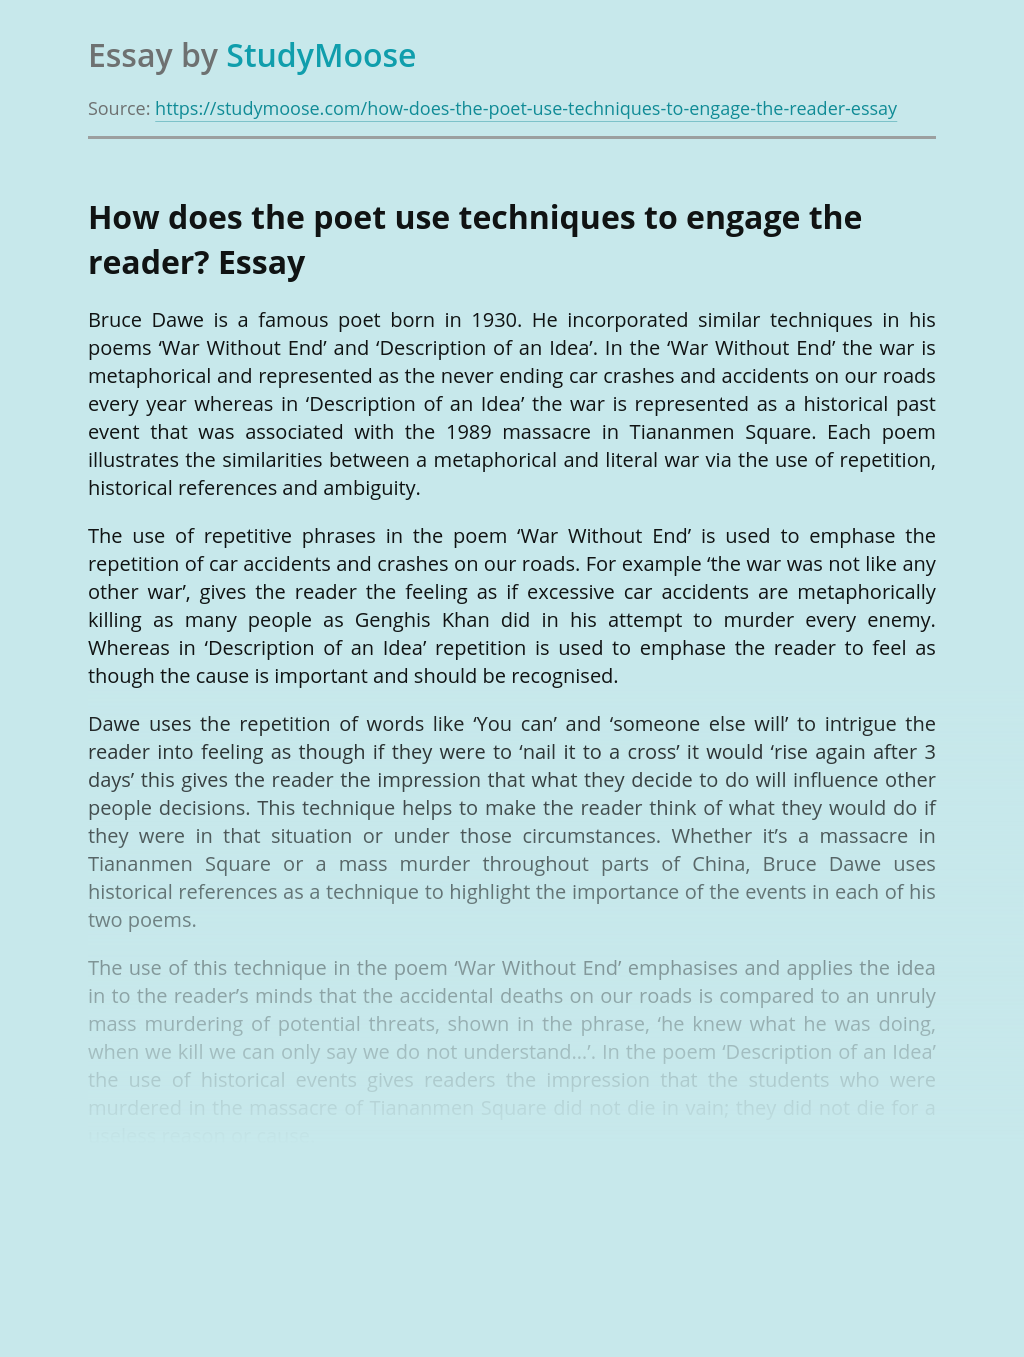 How Does the Poet Use Techniques to Engage the Reader?